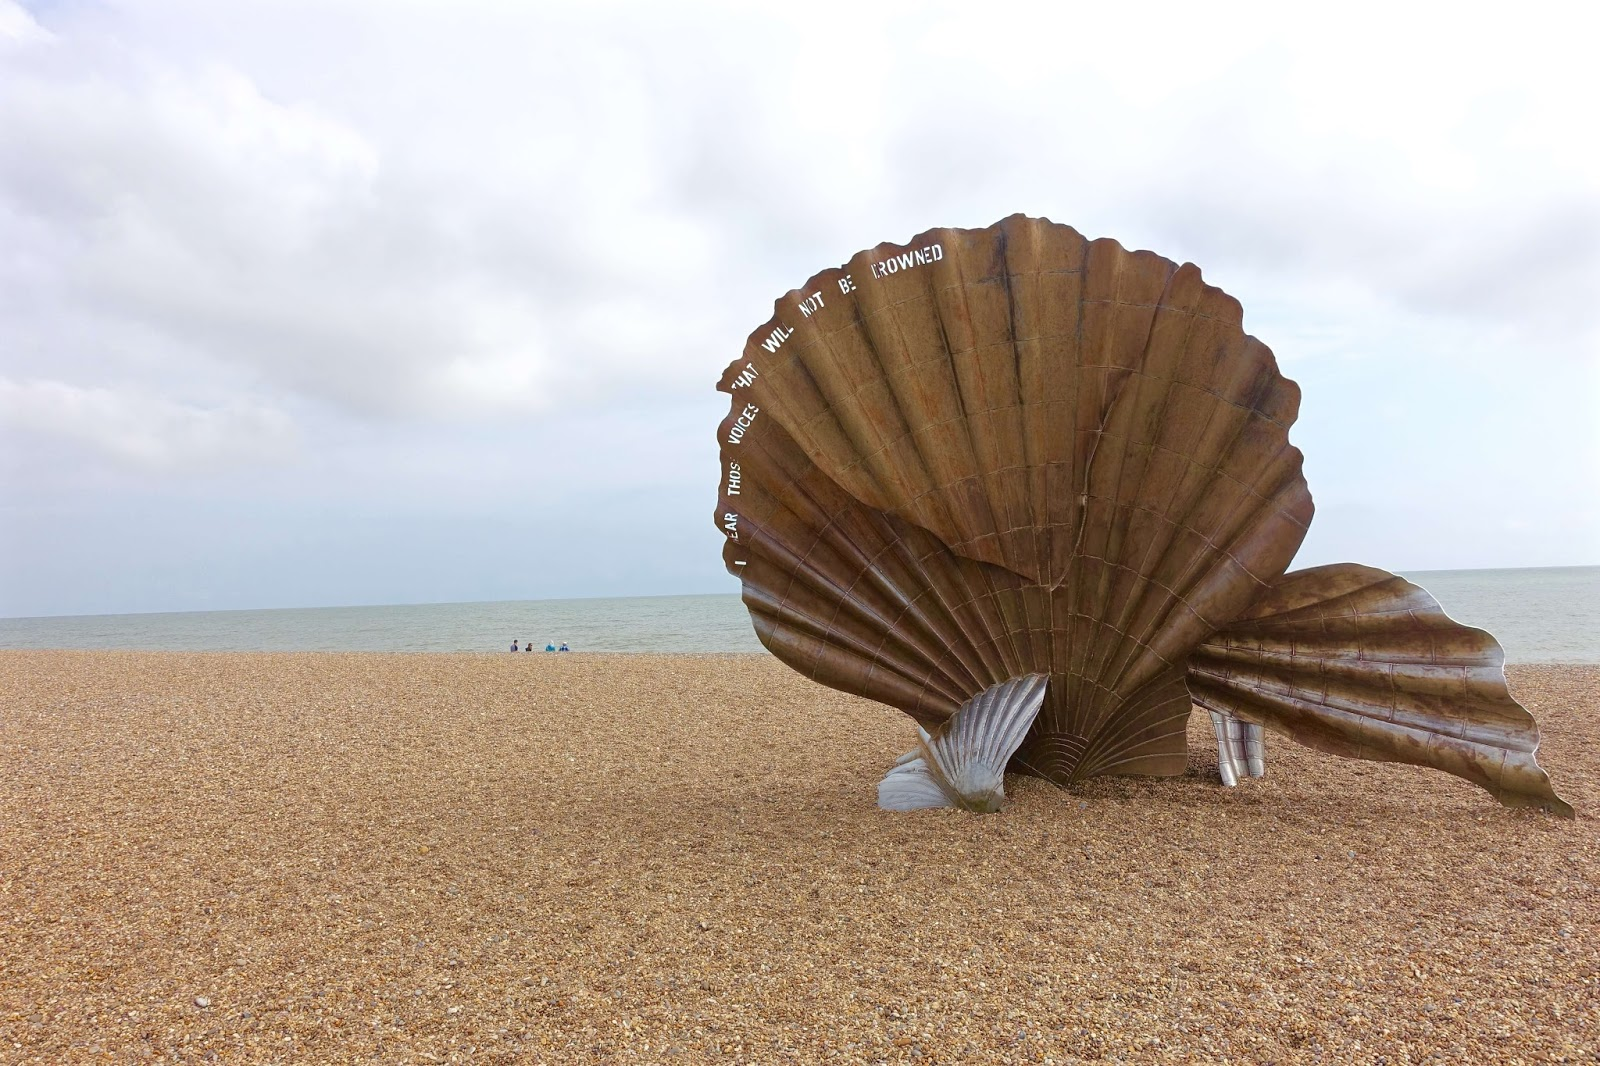 scallop sculpture on the way to thorpeness